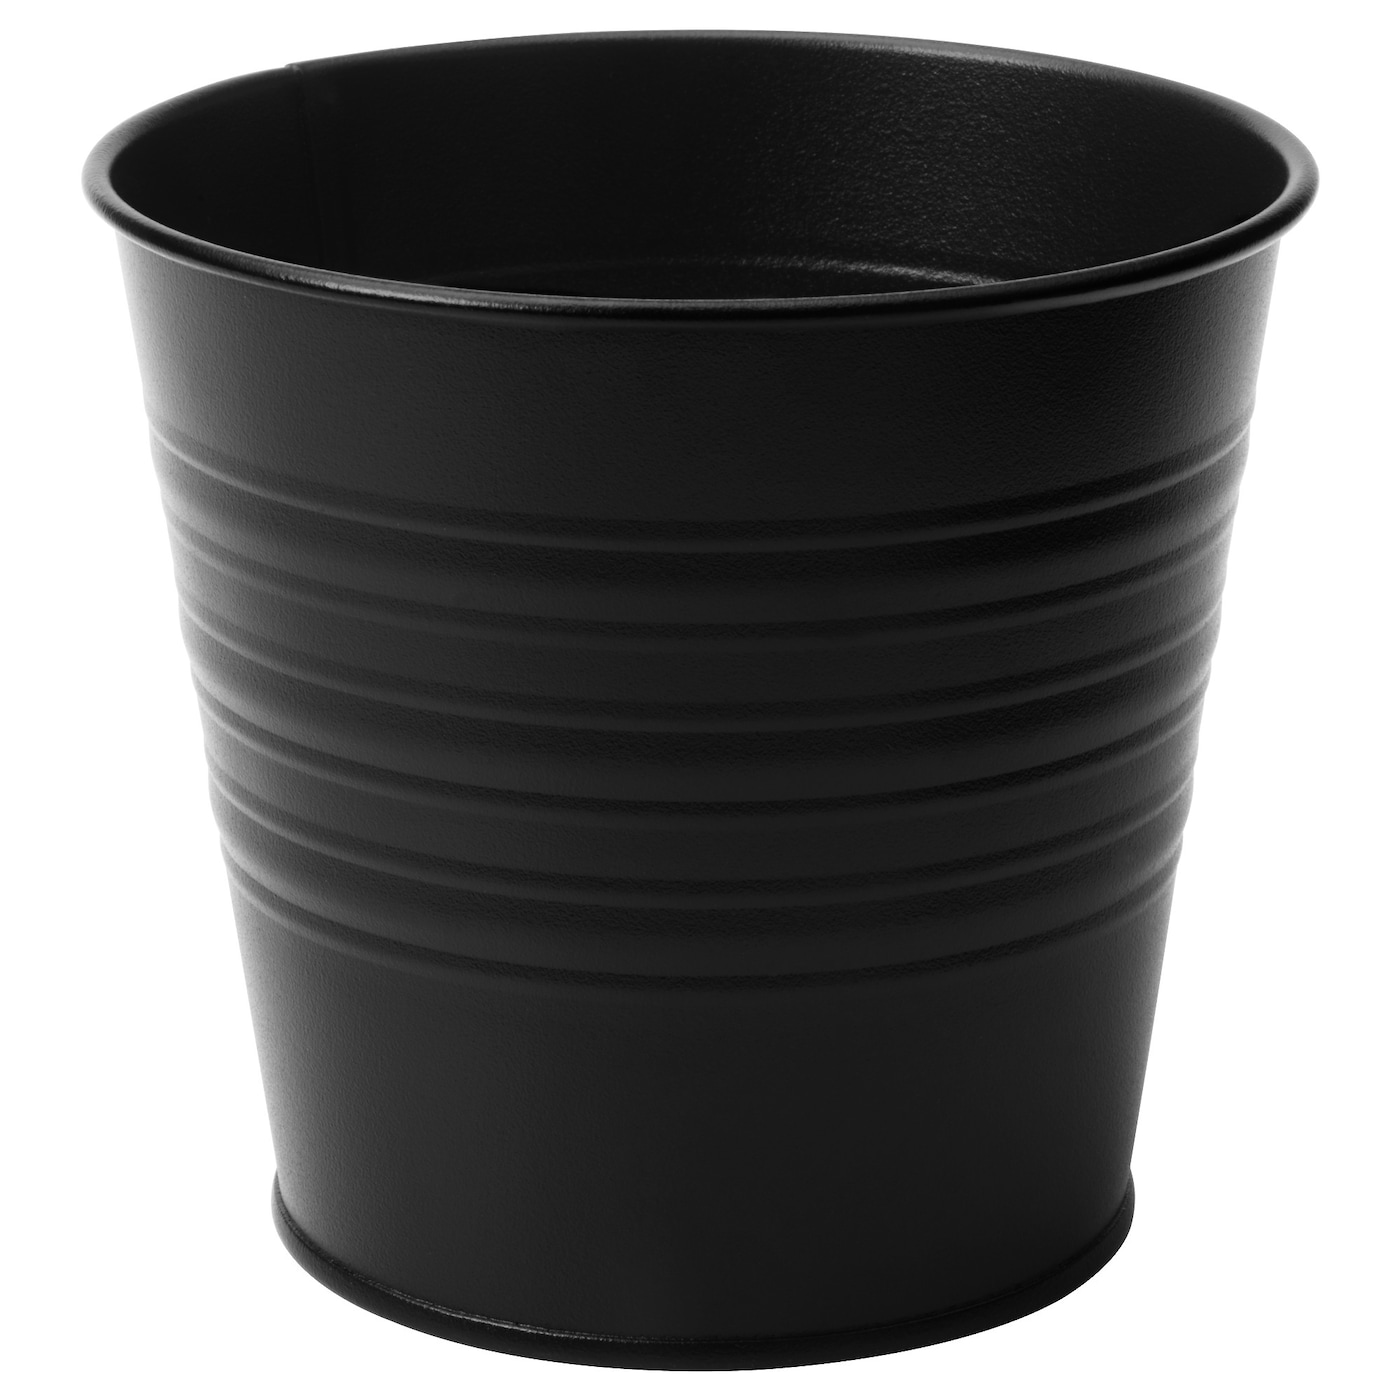 Plants pots indoor plant pots ikea for Black planters ikea